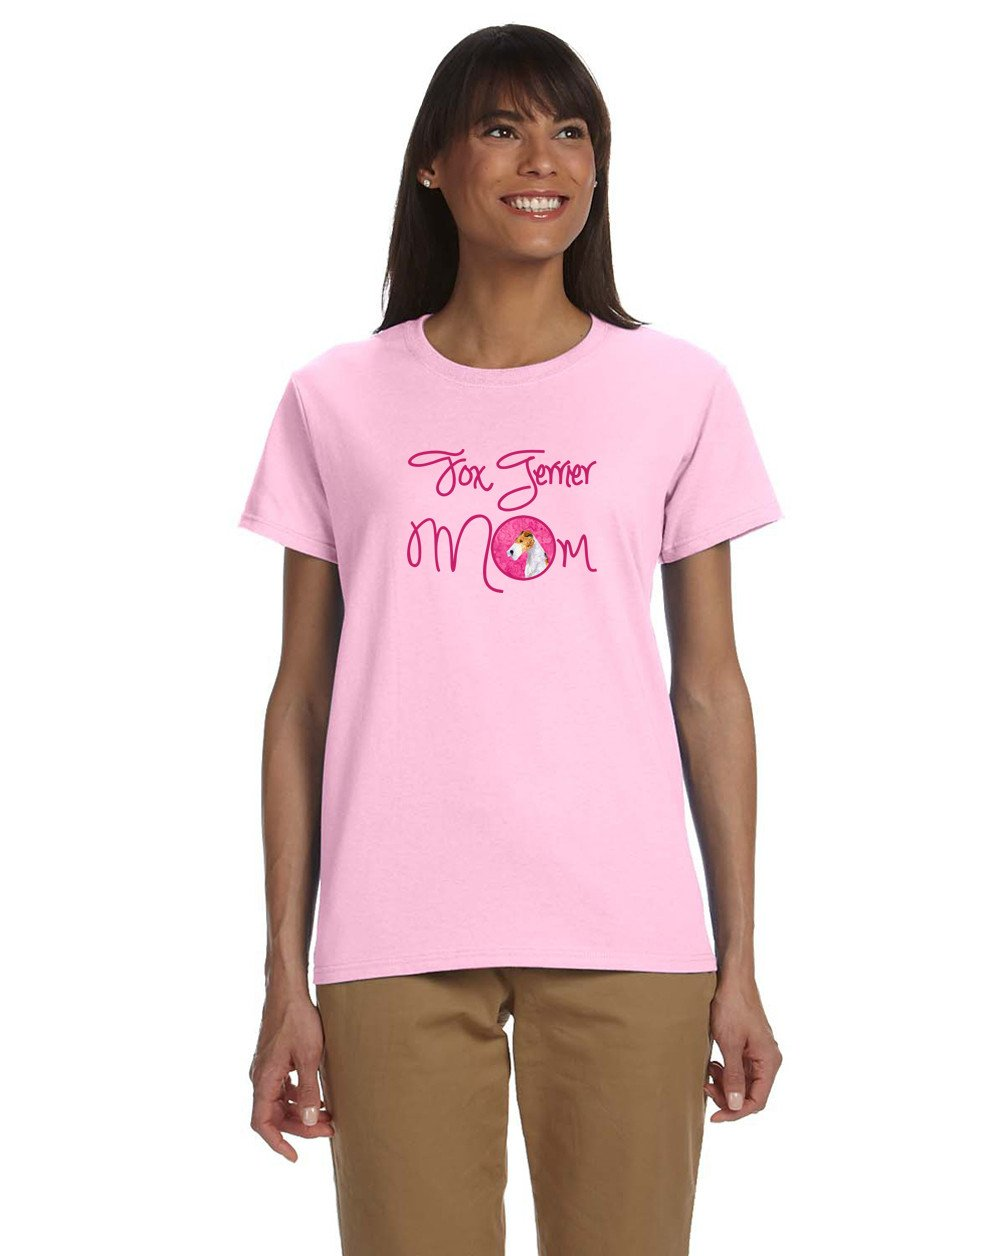 Pink Wire Fox Terrier Mom T-shirt Ladies Cut Short Sleeve Large SS4754PK-978-L by Caroline's Treasures